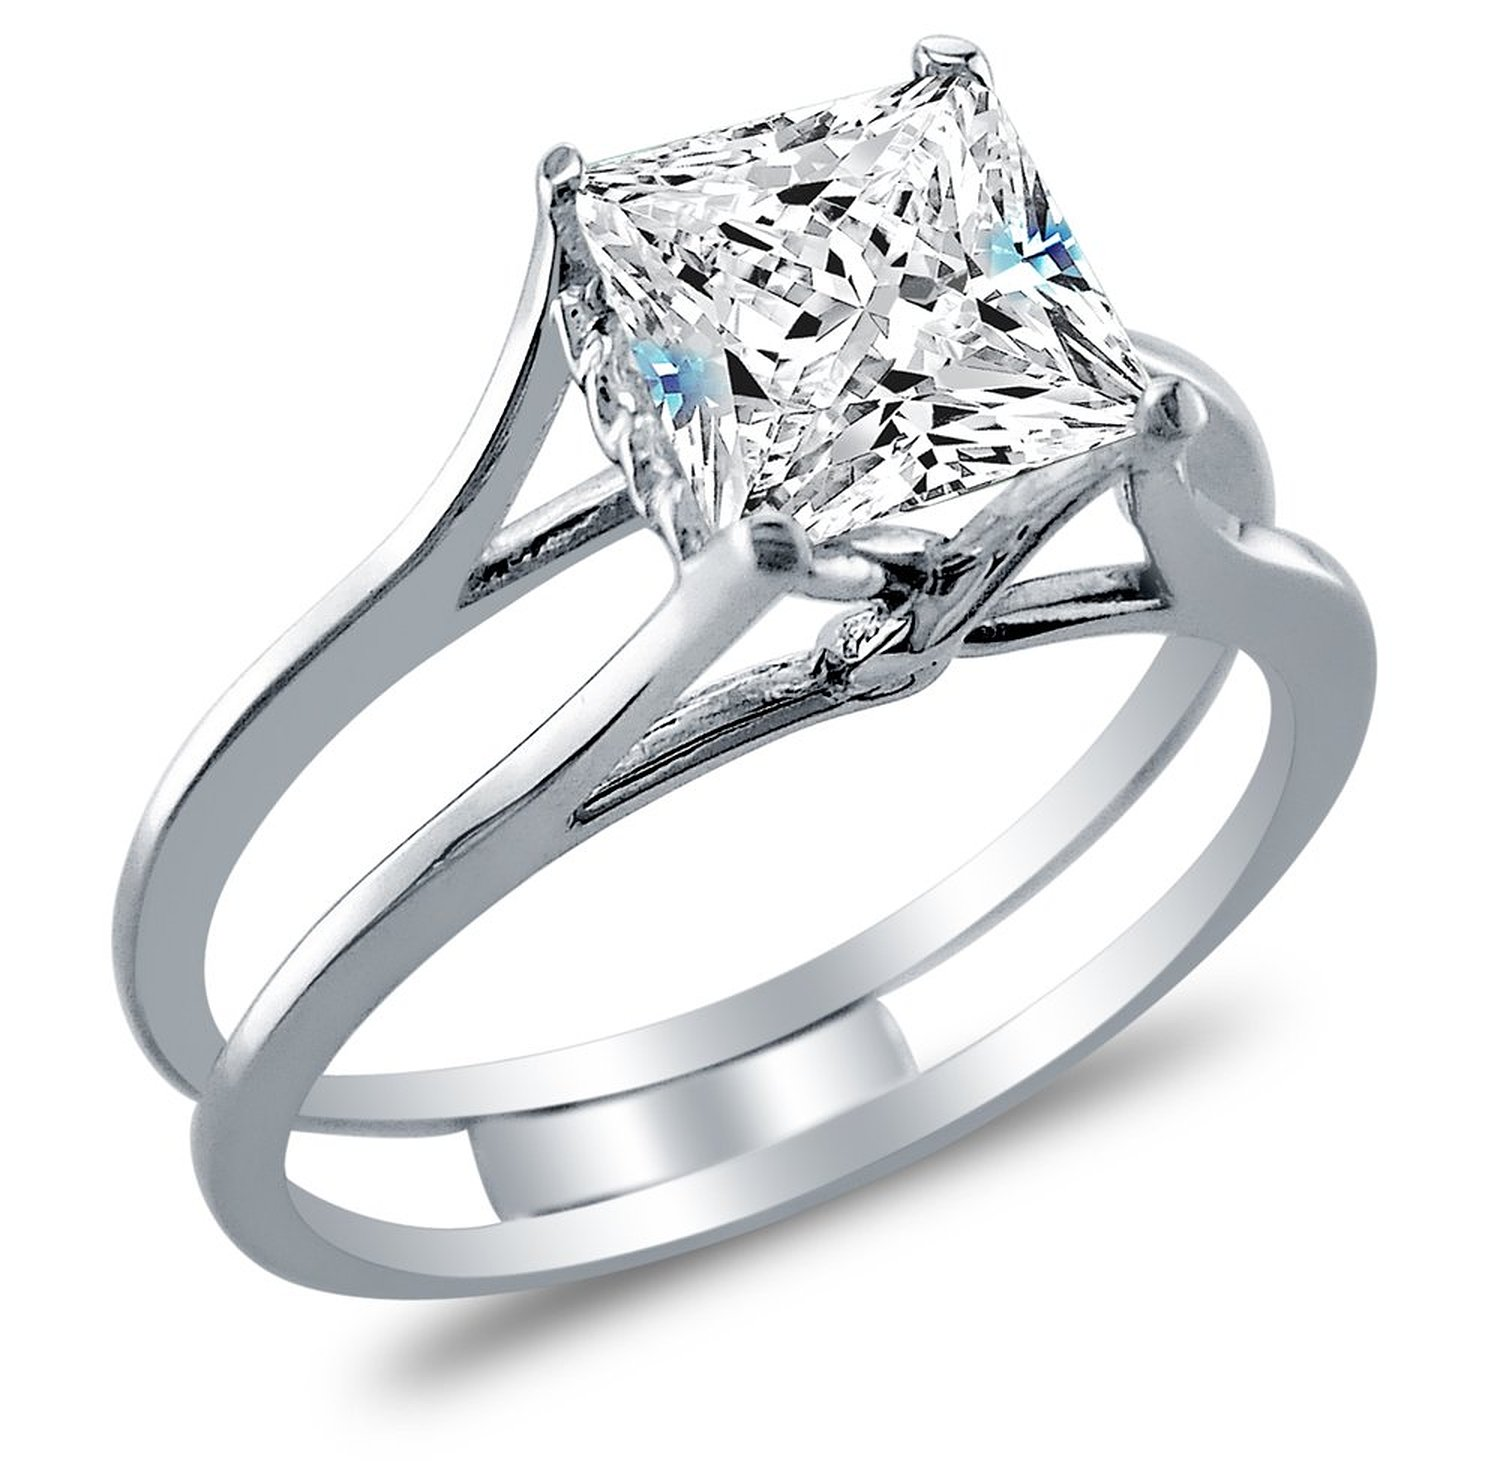 Sonia Jewels Women s Solid 925 SS Princess Cut Engagement Ring